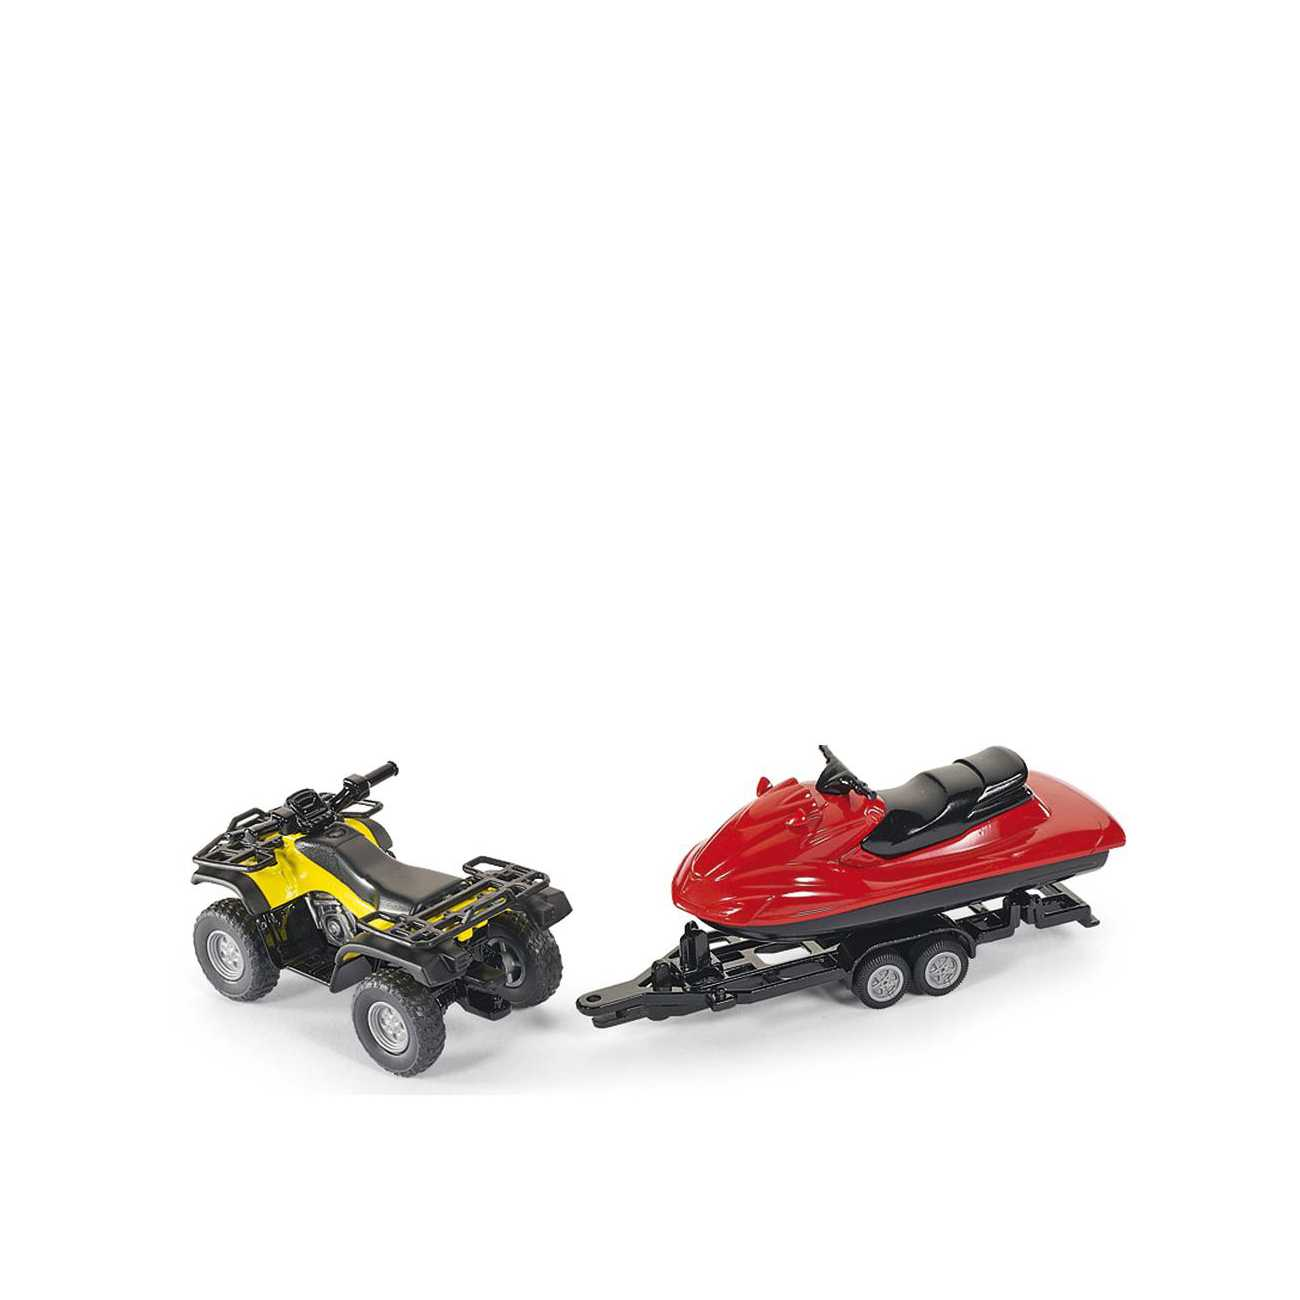 QUAD WITH TRAILER AND SNOW MOBILE